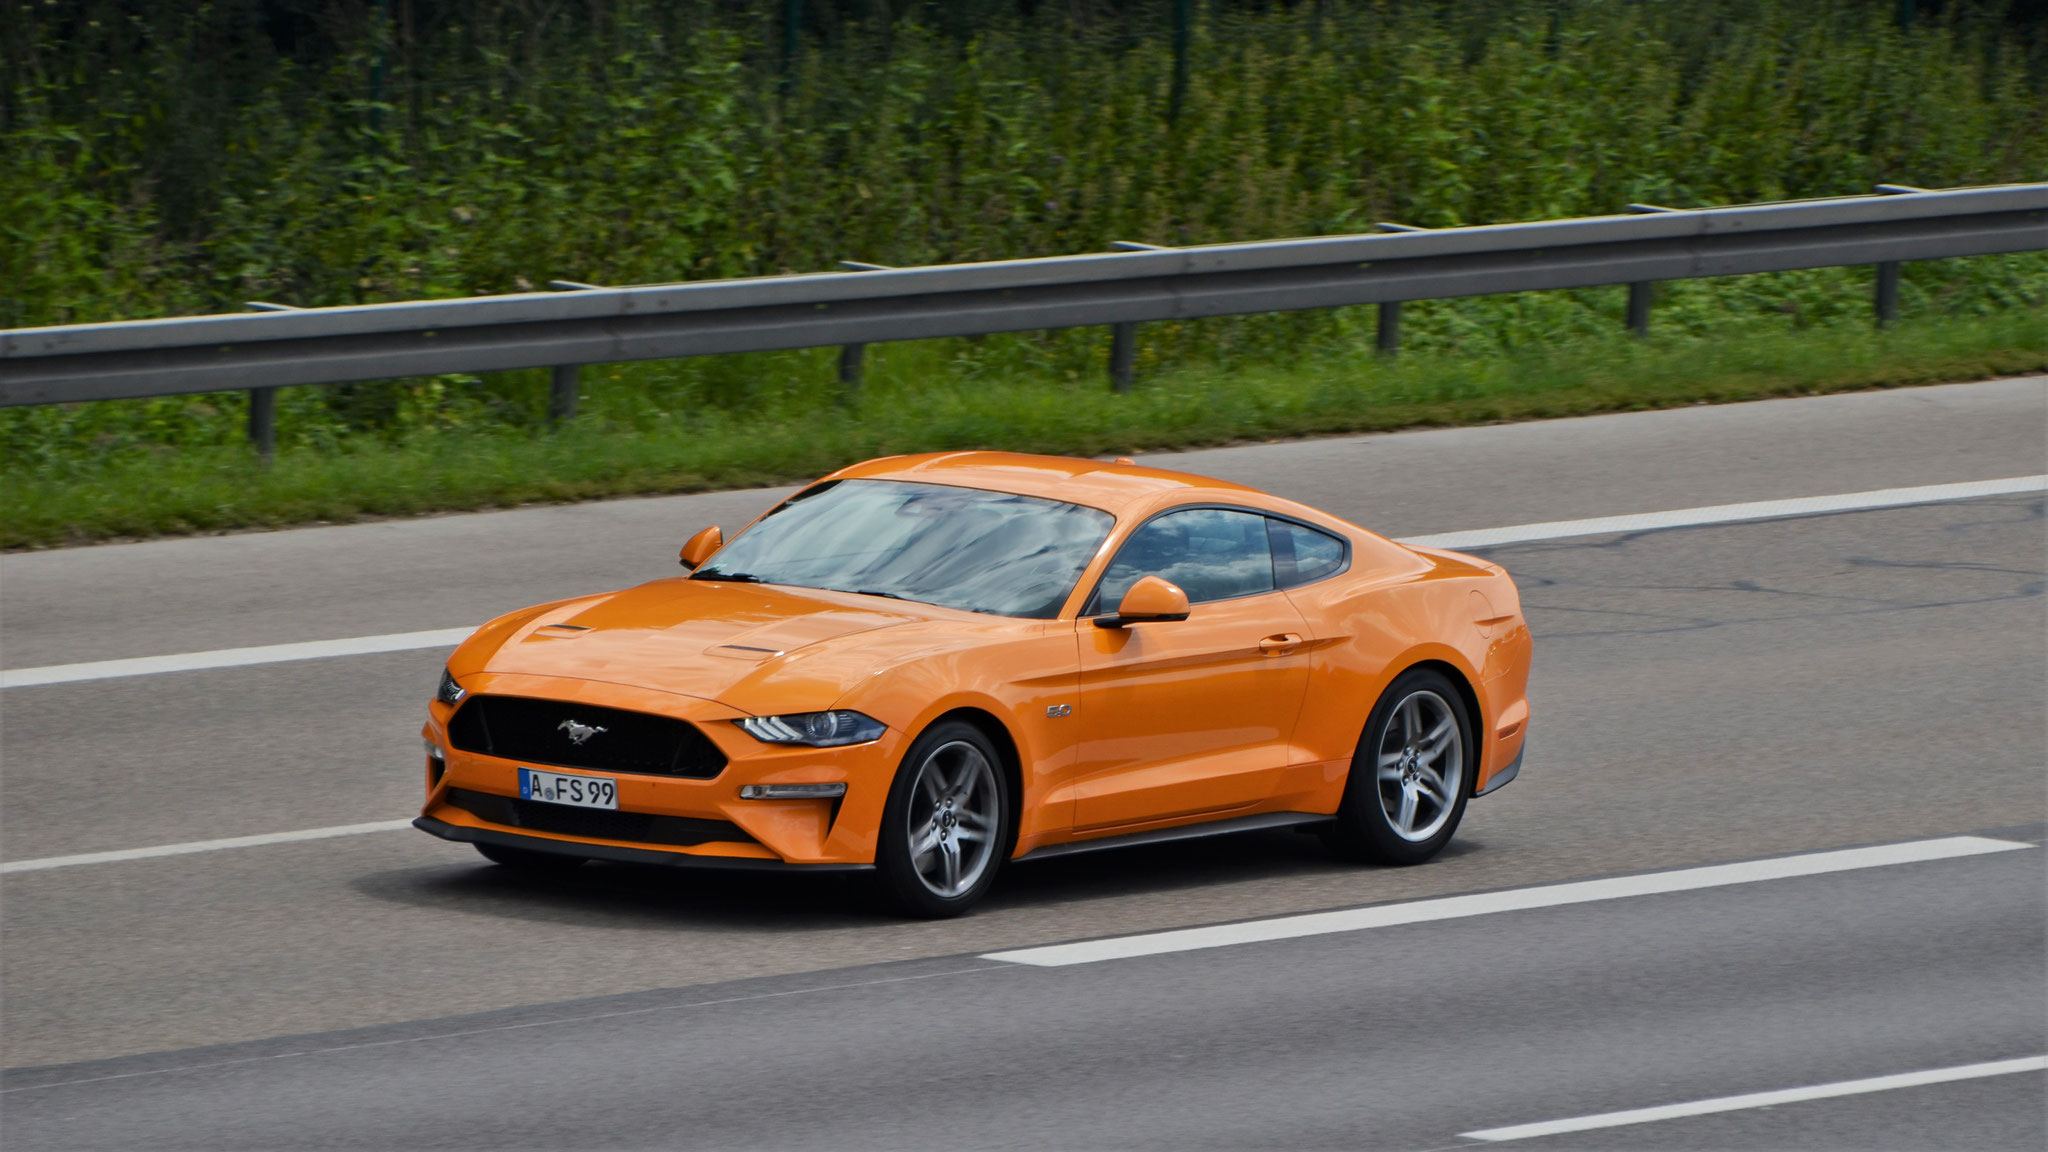 Ford Mustang GT - A-FS-99